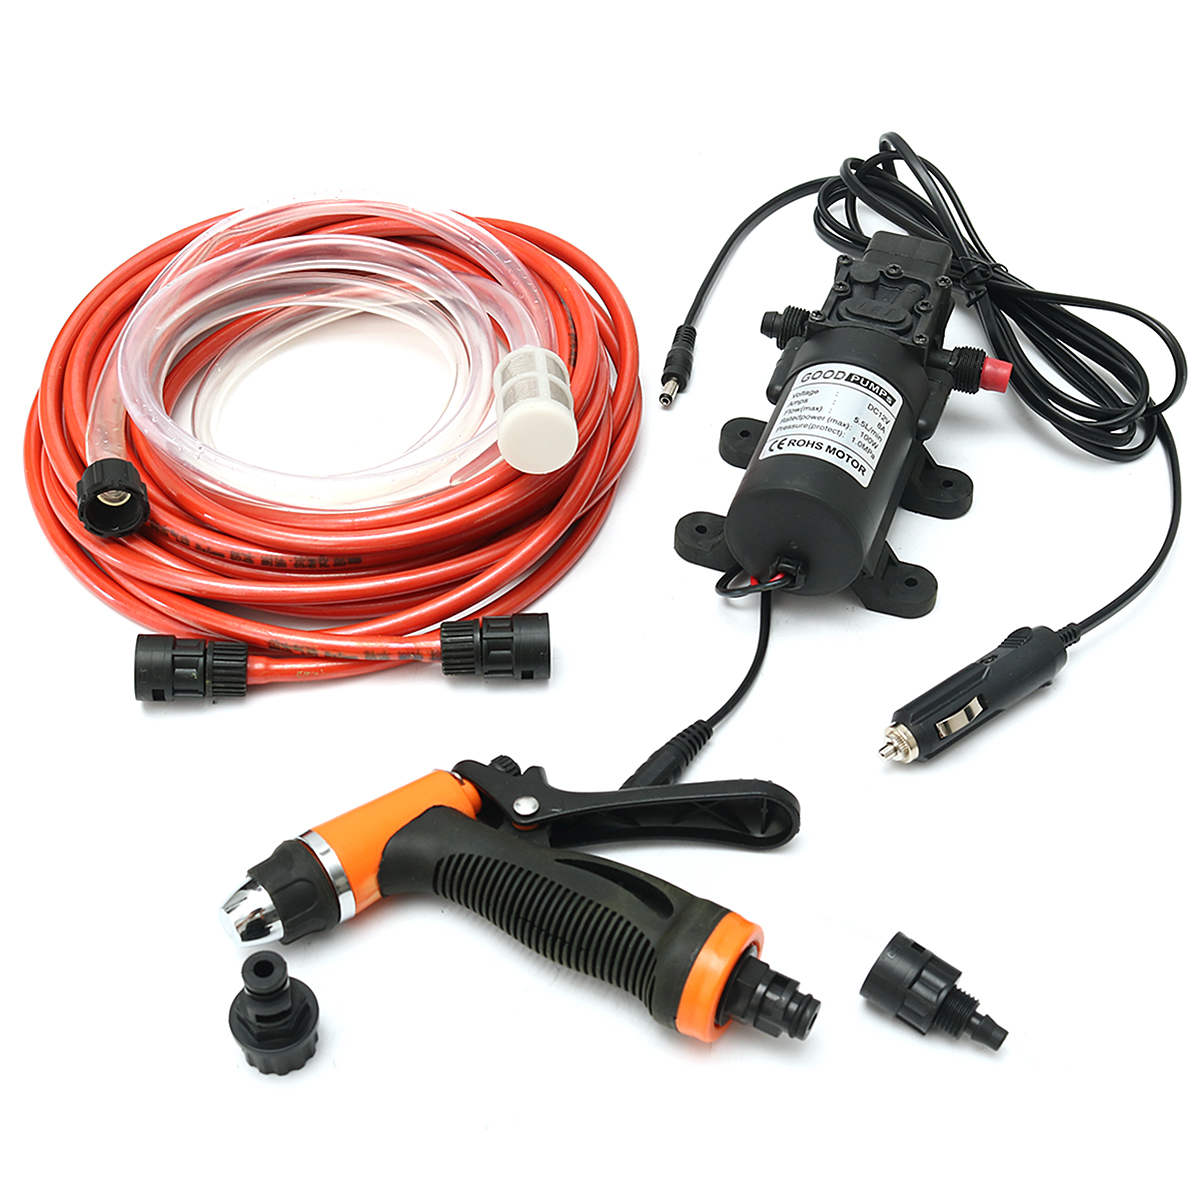 12V 100W 160PSI High Pressure Self-priming Electric Car Wash Washer Portable Washing Machine Cigarette Lighter Water Pump Set portable water pump cigarette lighter high pressure 12v spray gun car cleaner self suction electric car washer